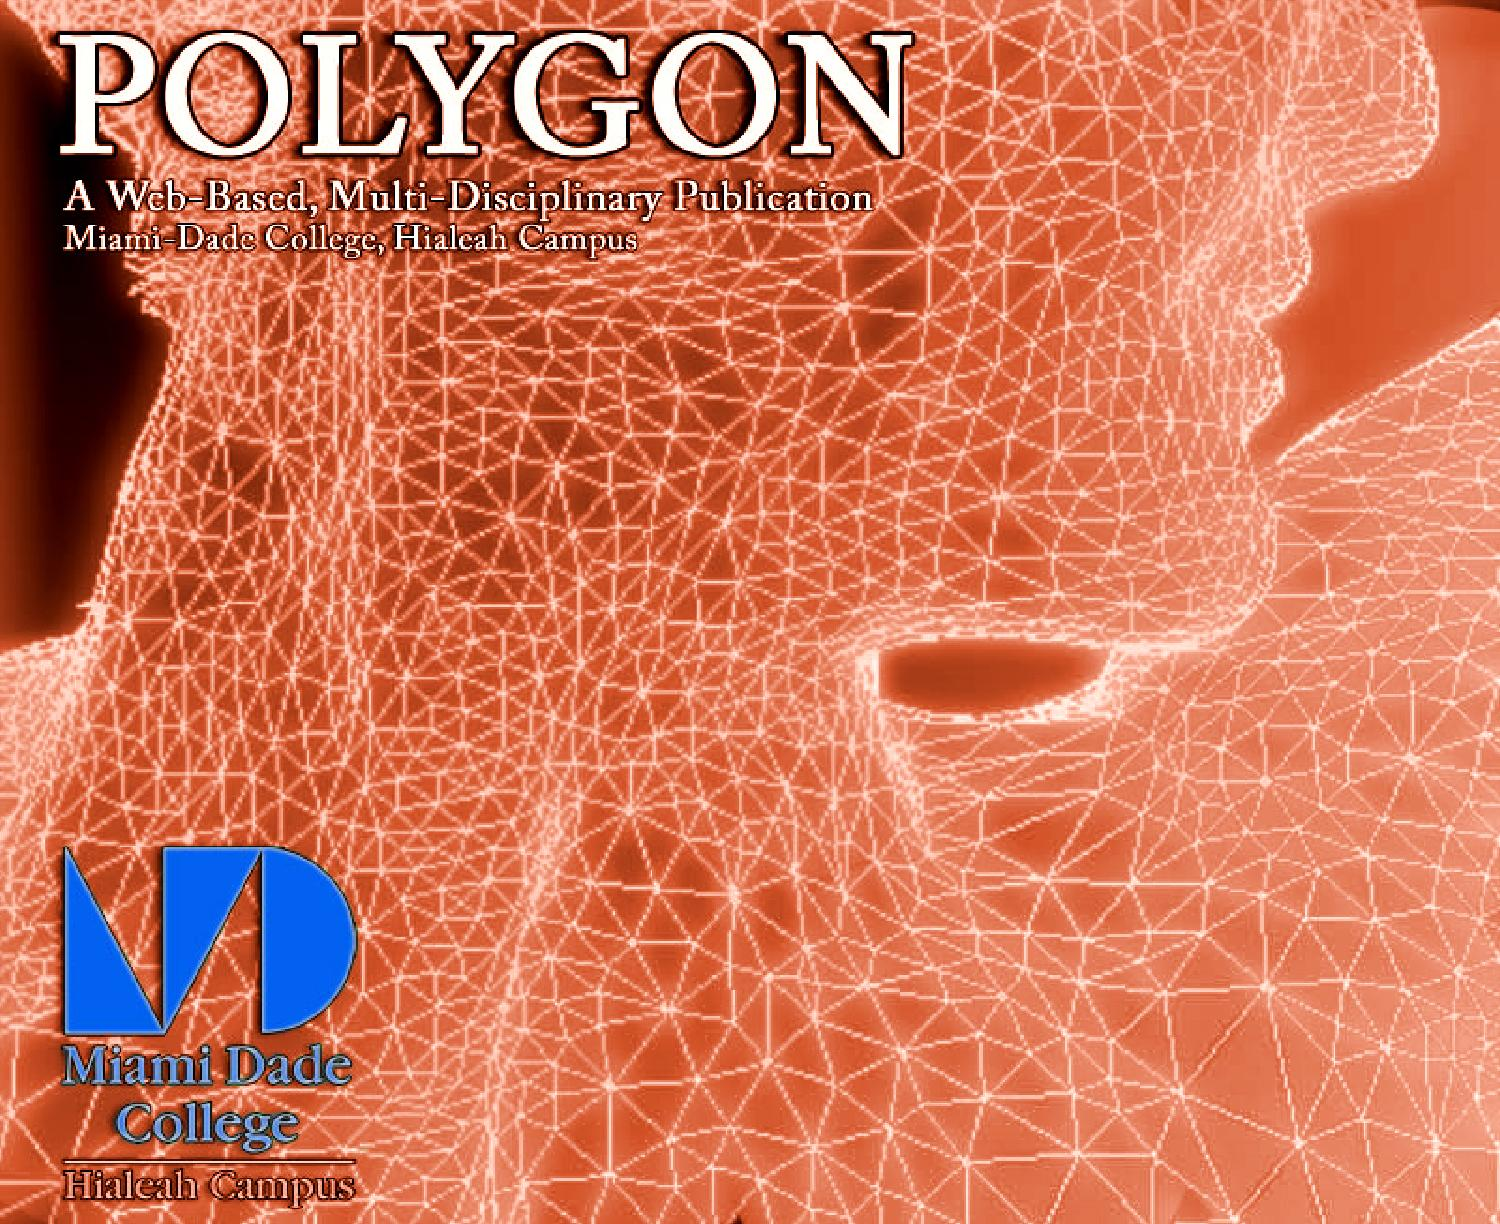 Polygon 2008 by MDC-Polygon - issuu